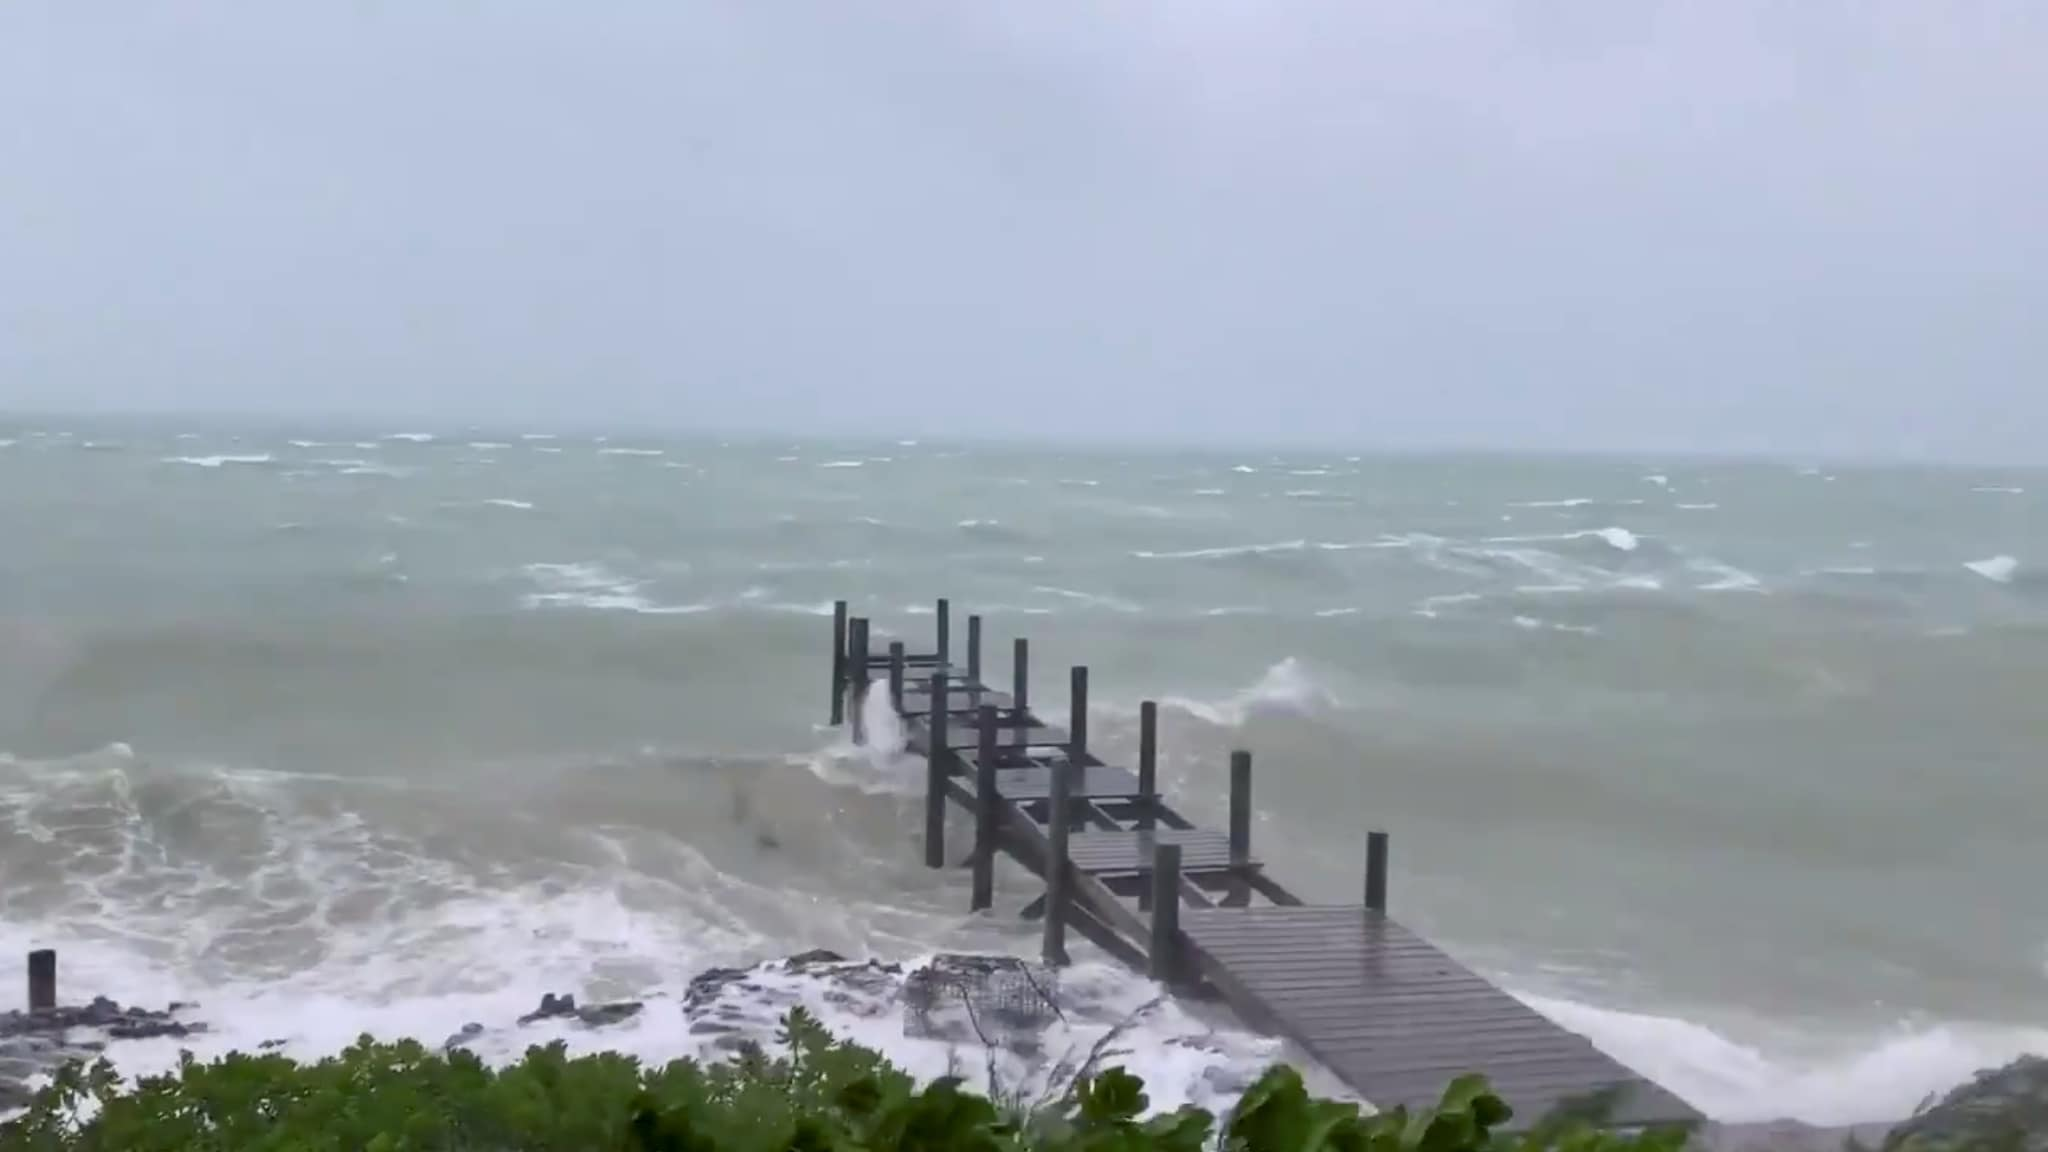 Sea conditions are seen in Marsh Harbour, Bahamas September 1, 2019 in this still image taken from a video by social media. Mark Hall/Christopher Hall via REUTERS